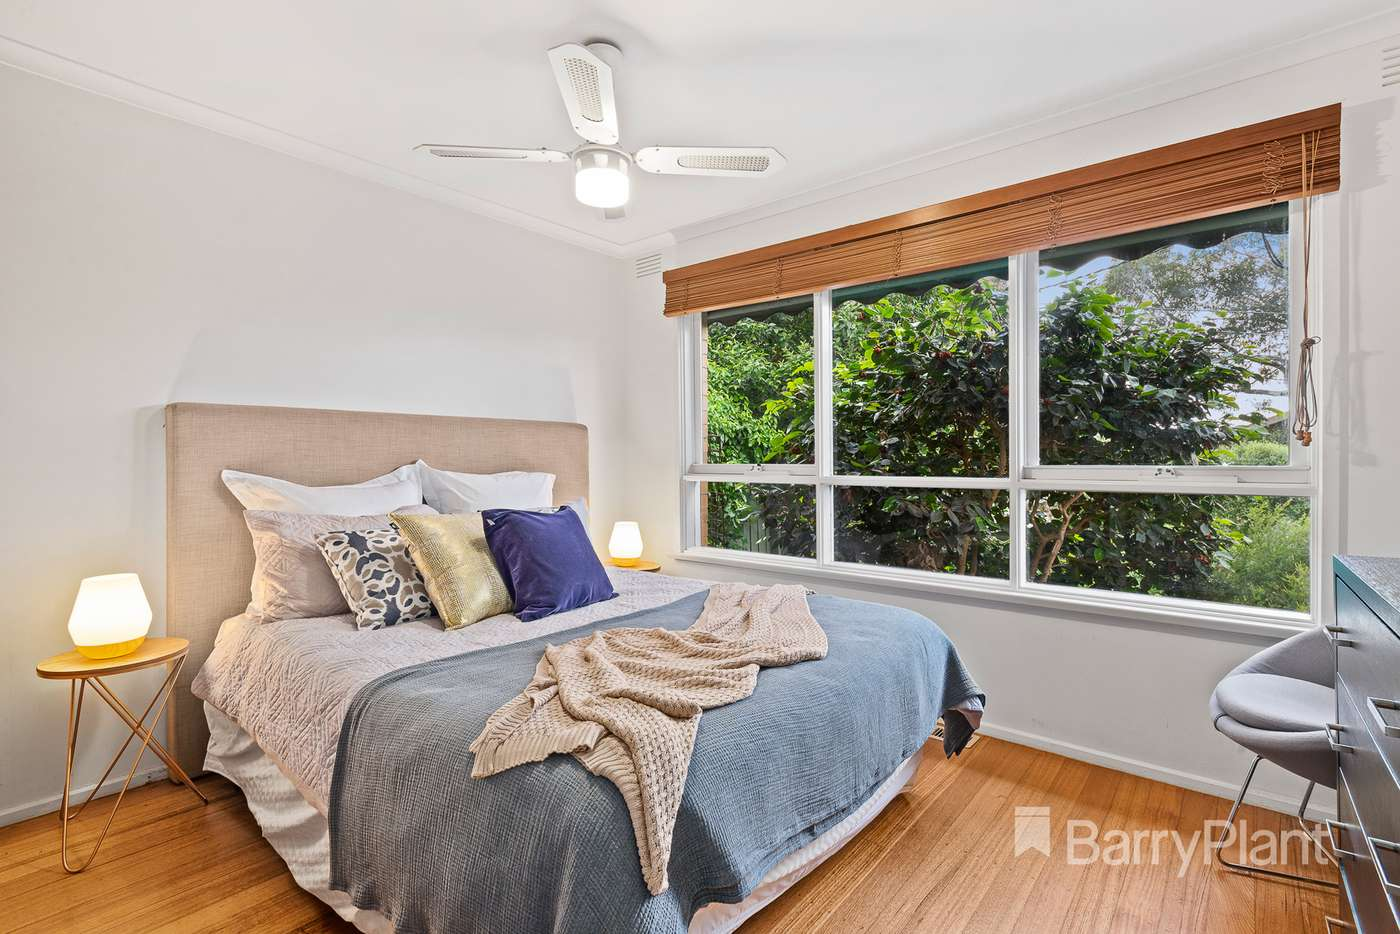 Sixth view of Homely house listing, 3 Frances Avenue, Greensborough VIC 3088